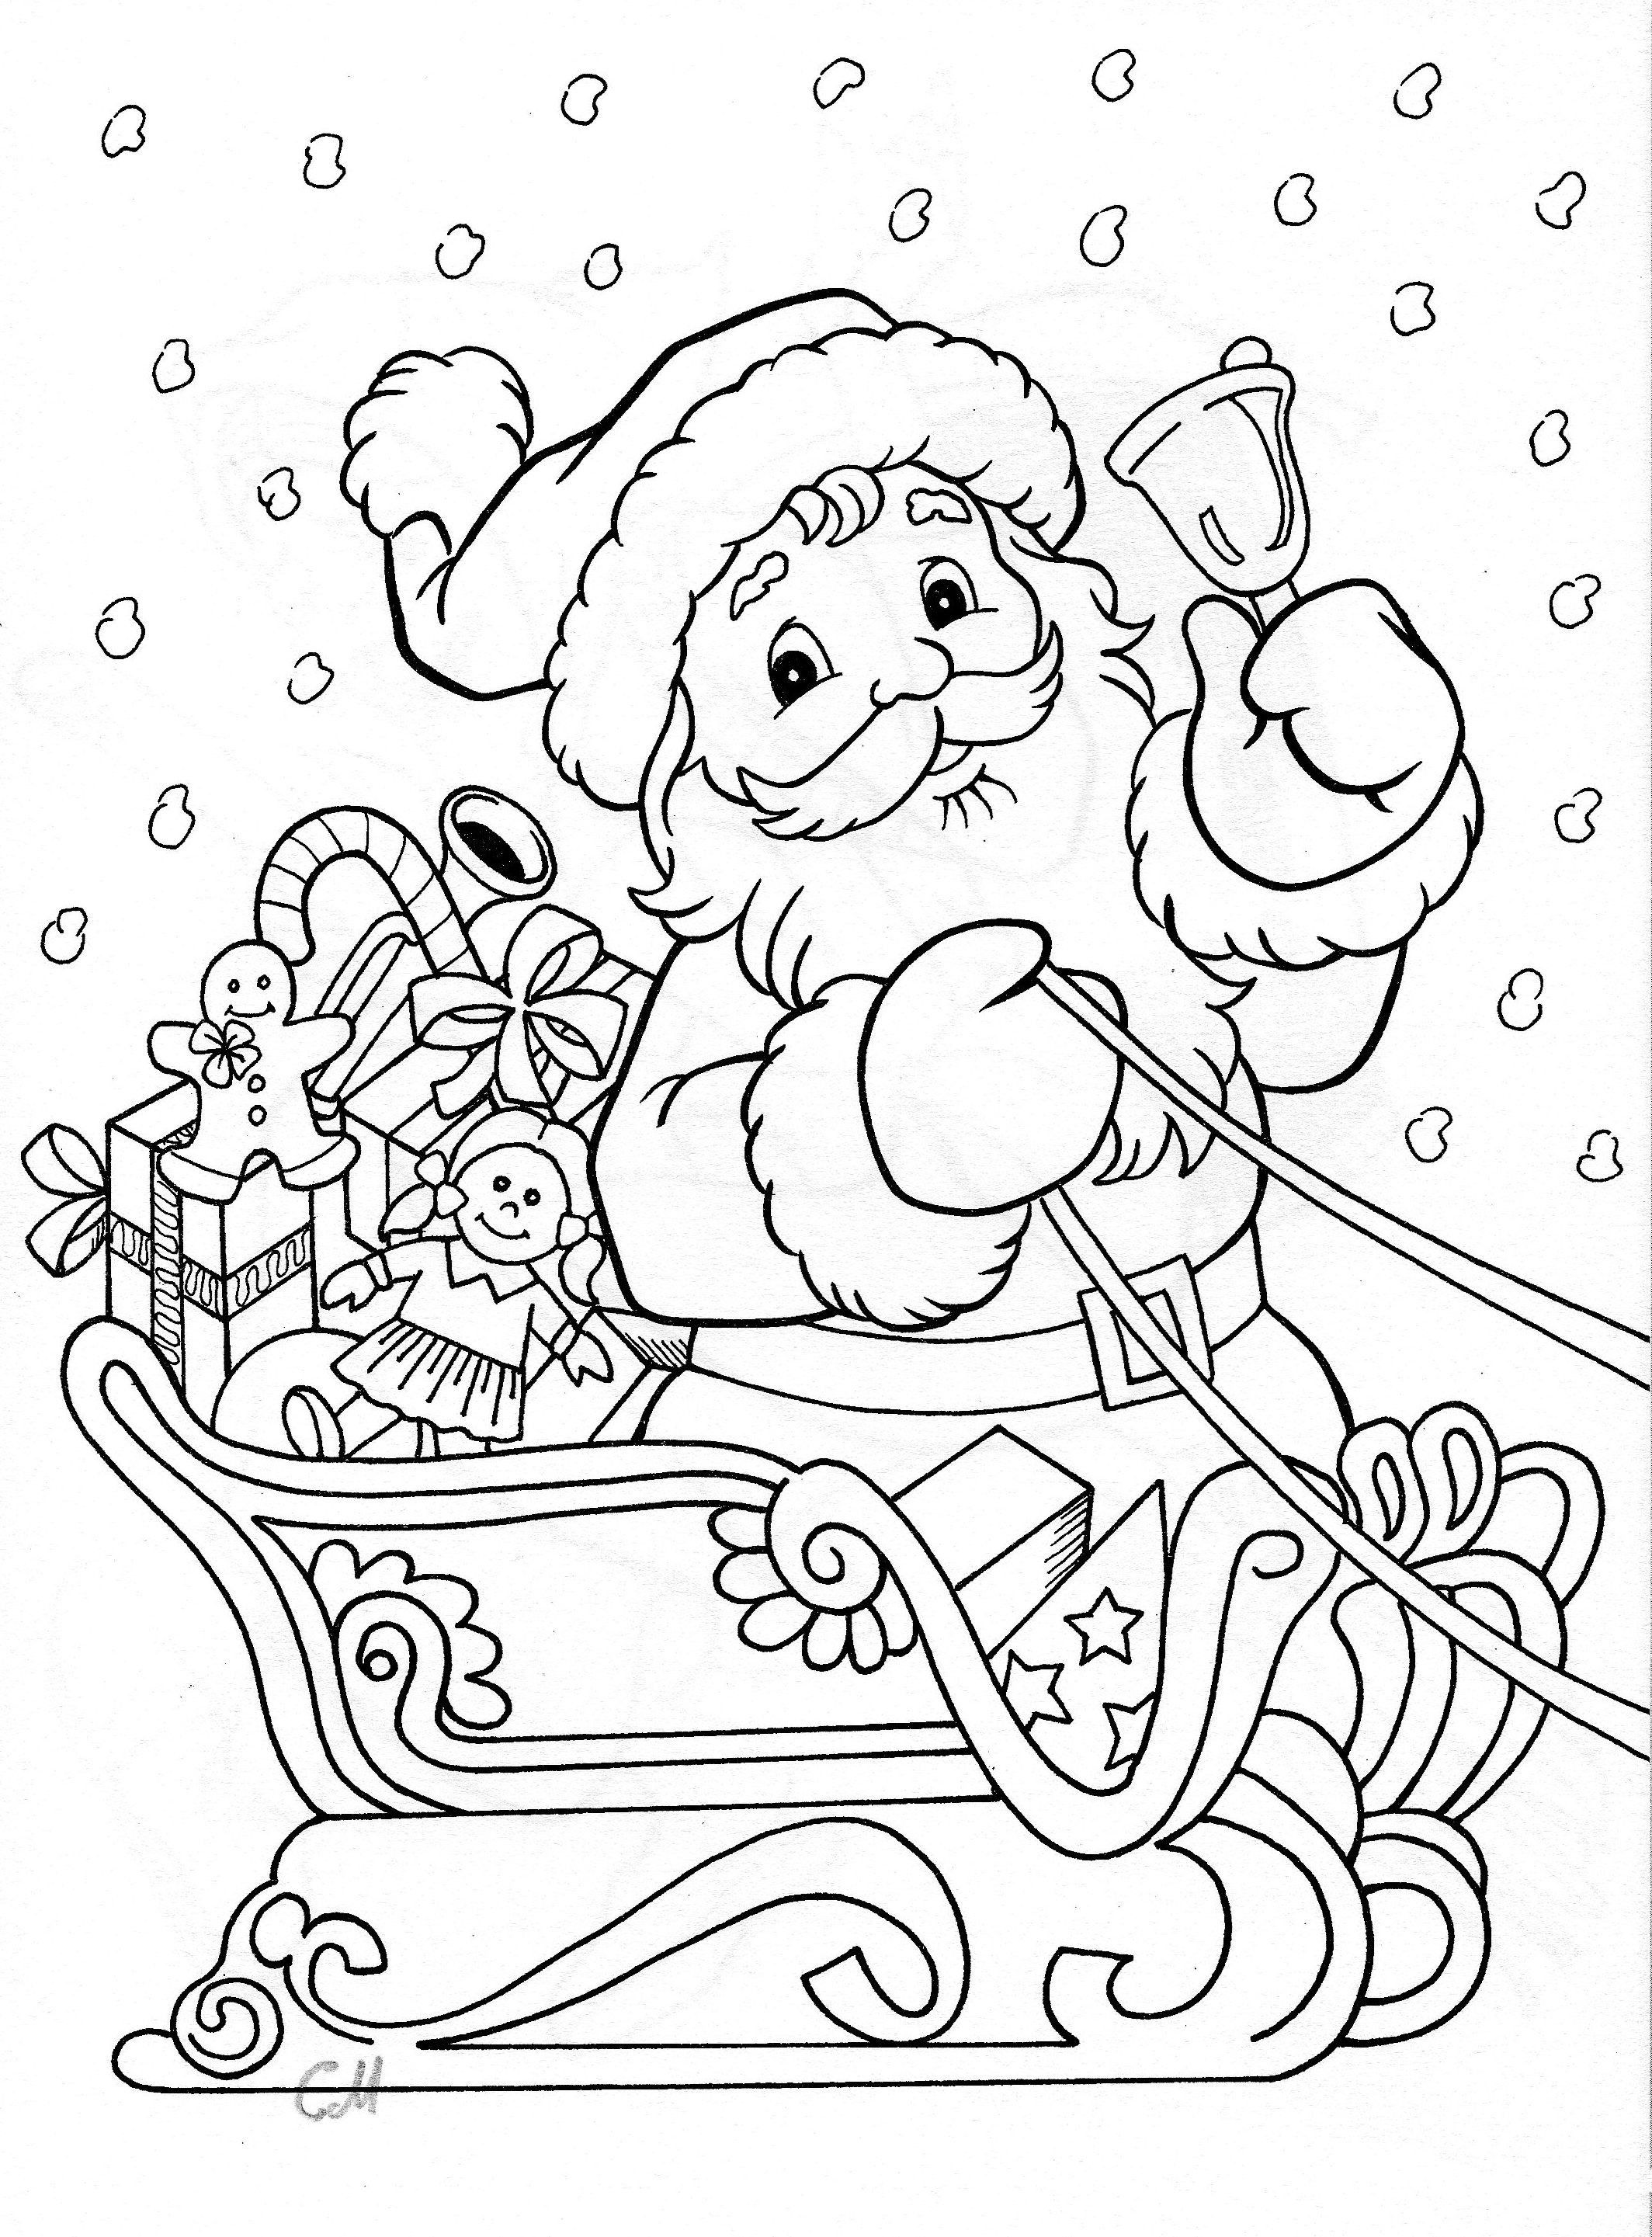 New Father Christmas Colouring Pages Coloring Coloringpages Coloringpagesf Christmas Coloring Sheets Santa Coloring Pages Printable Christmas Coloring Pages